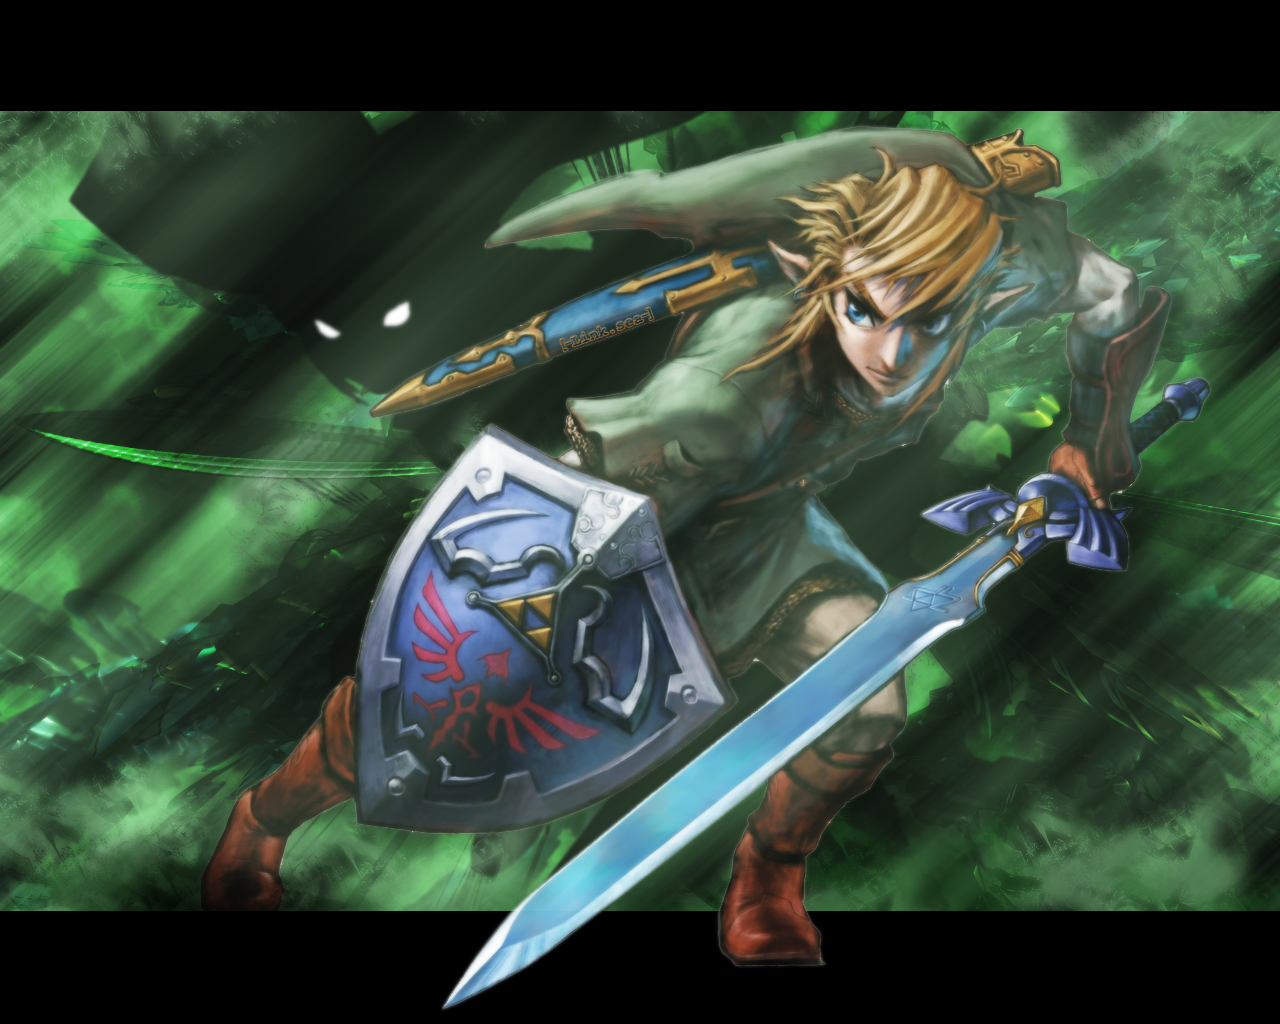 Wallpaper Abyss Explore the Collection Zelda Video Game Zelda 19001 1280x1024